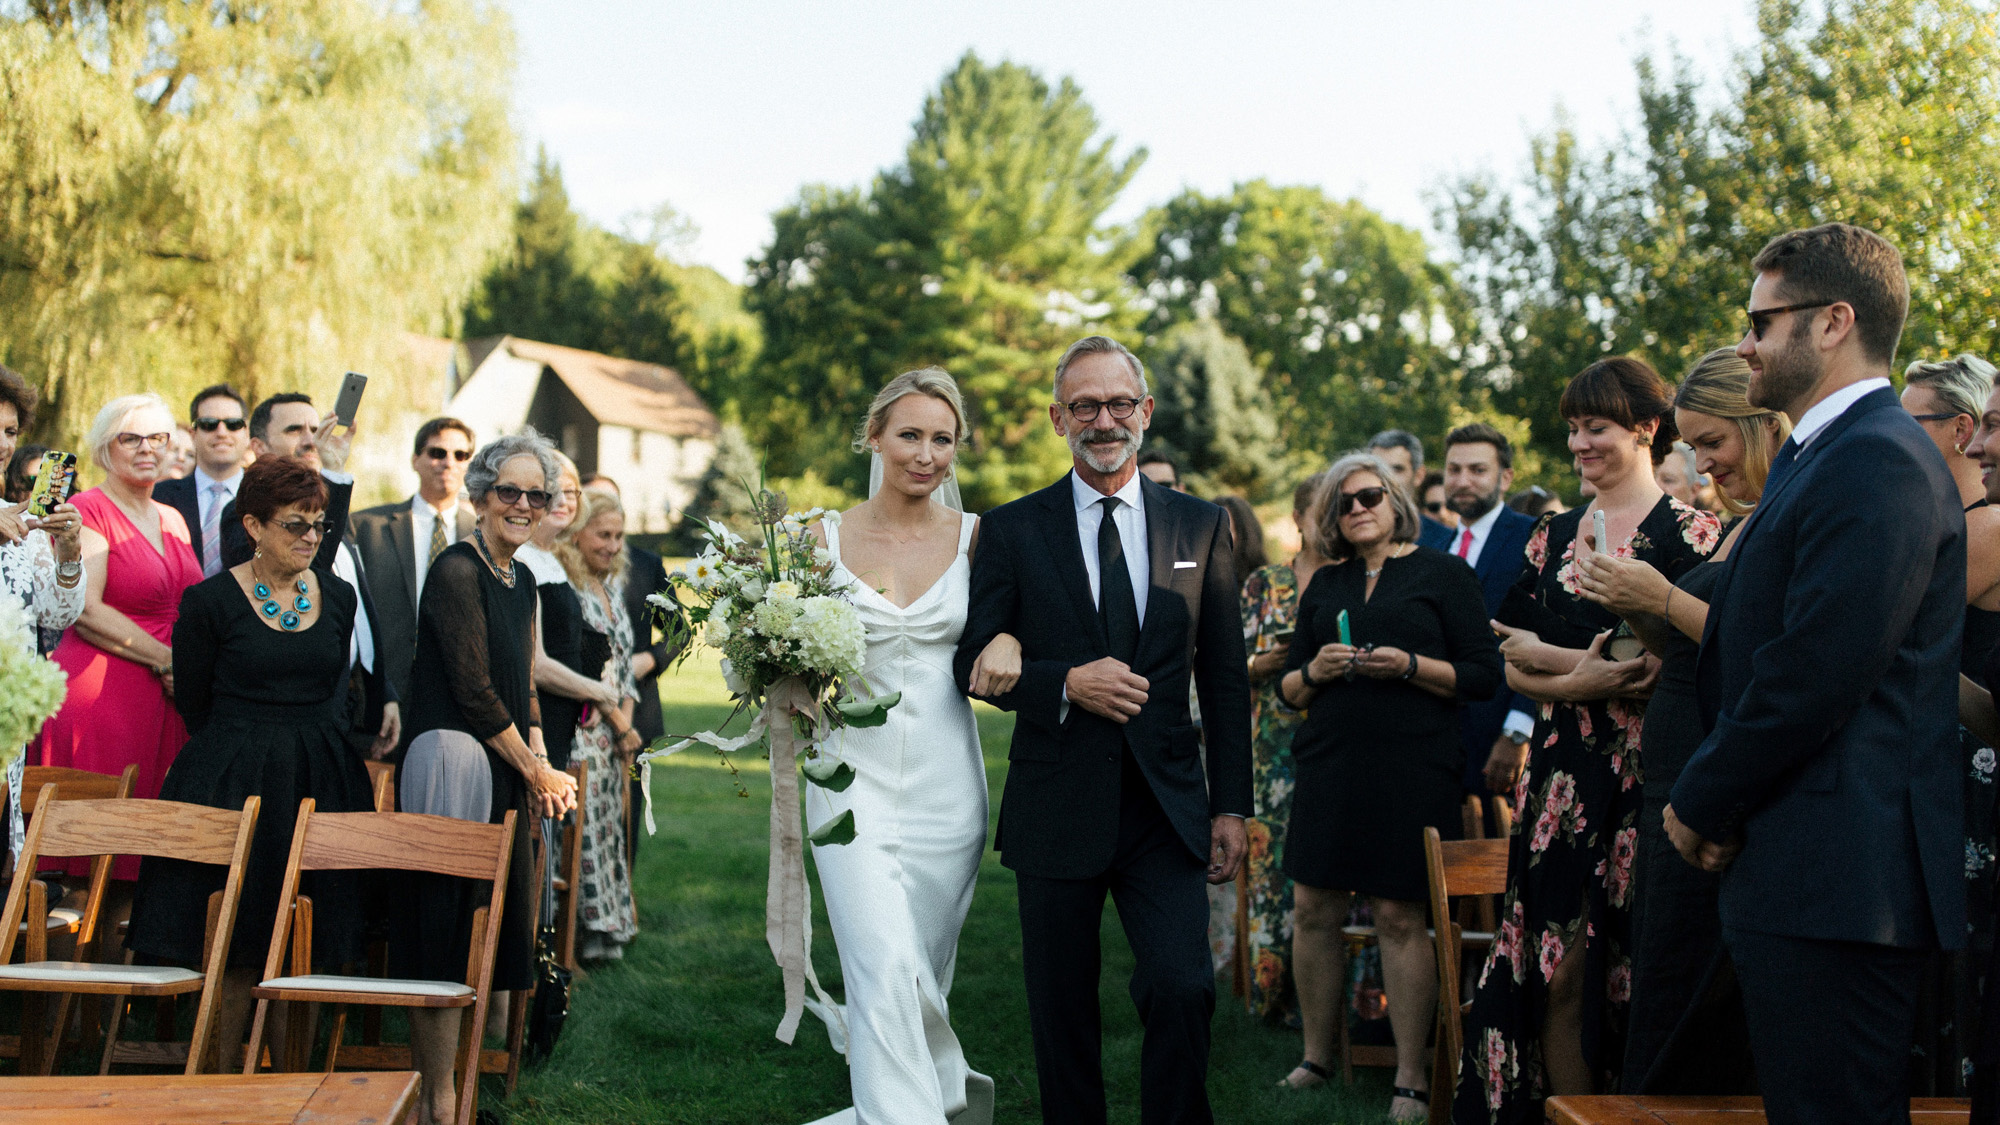 upstate_new_york_wedding_alec_vanderboom-0067.jpg